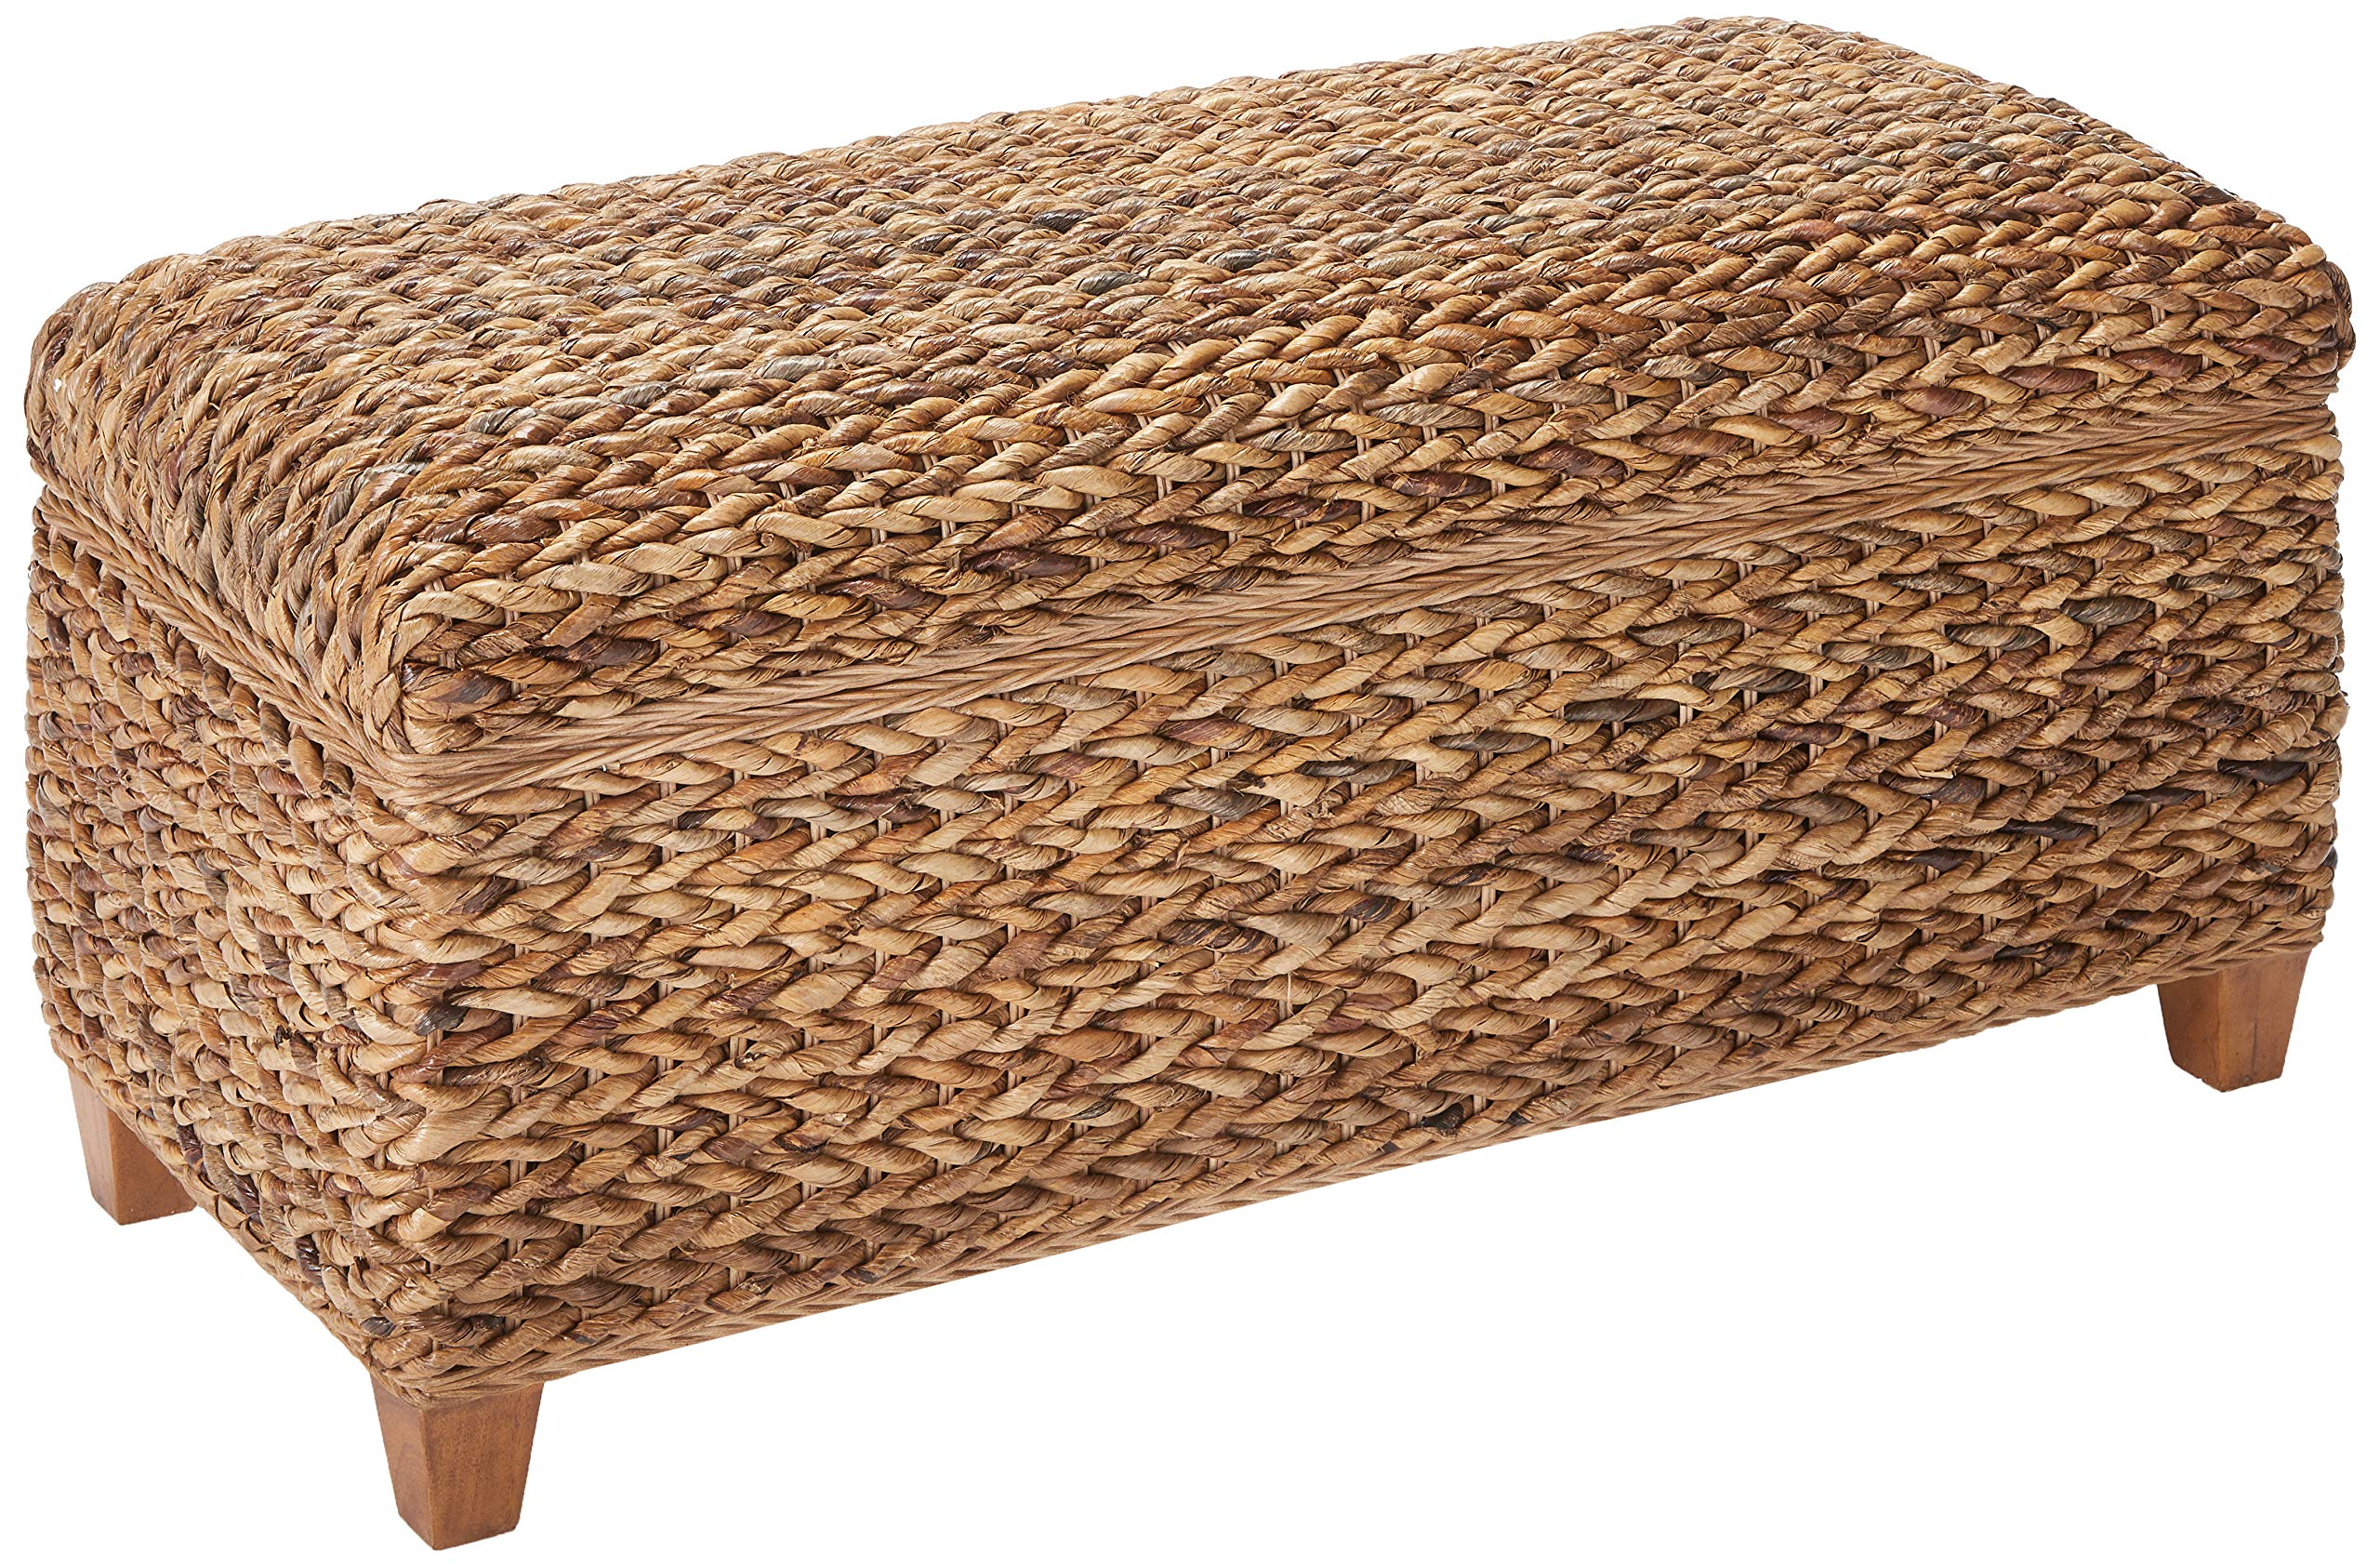 Laughton Woven Banana Leaf Trunk Amber by Coaster Home Furnishings